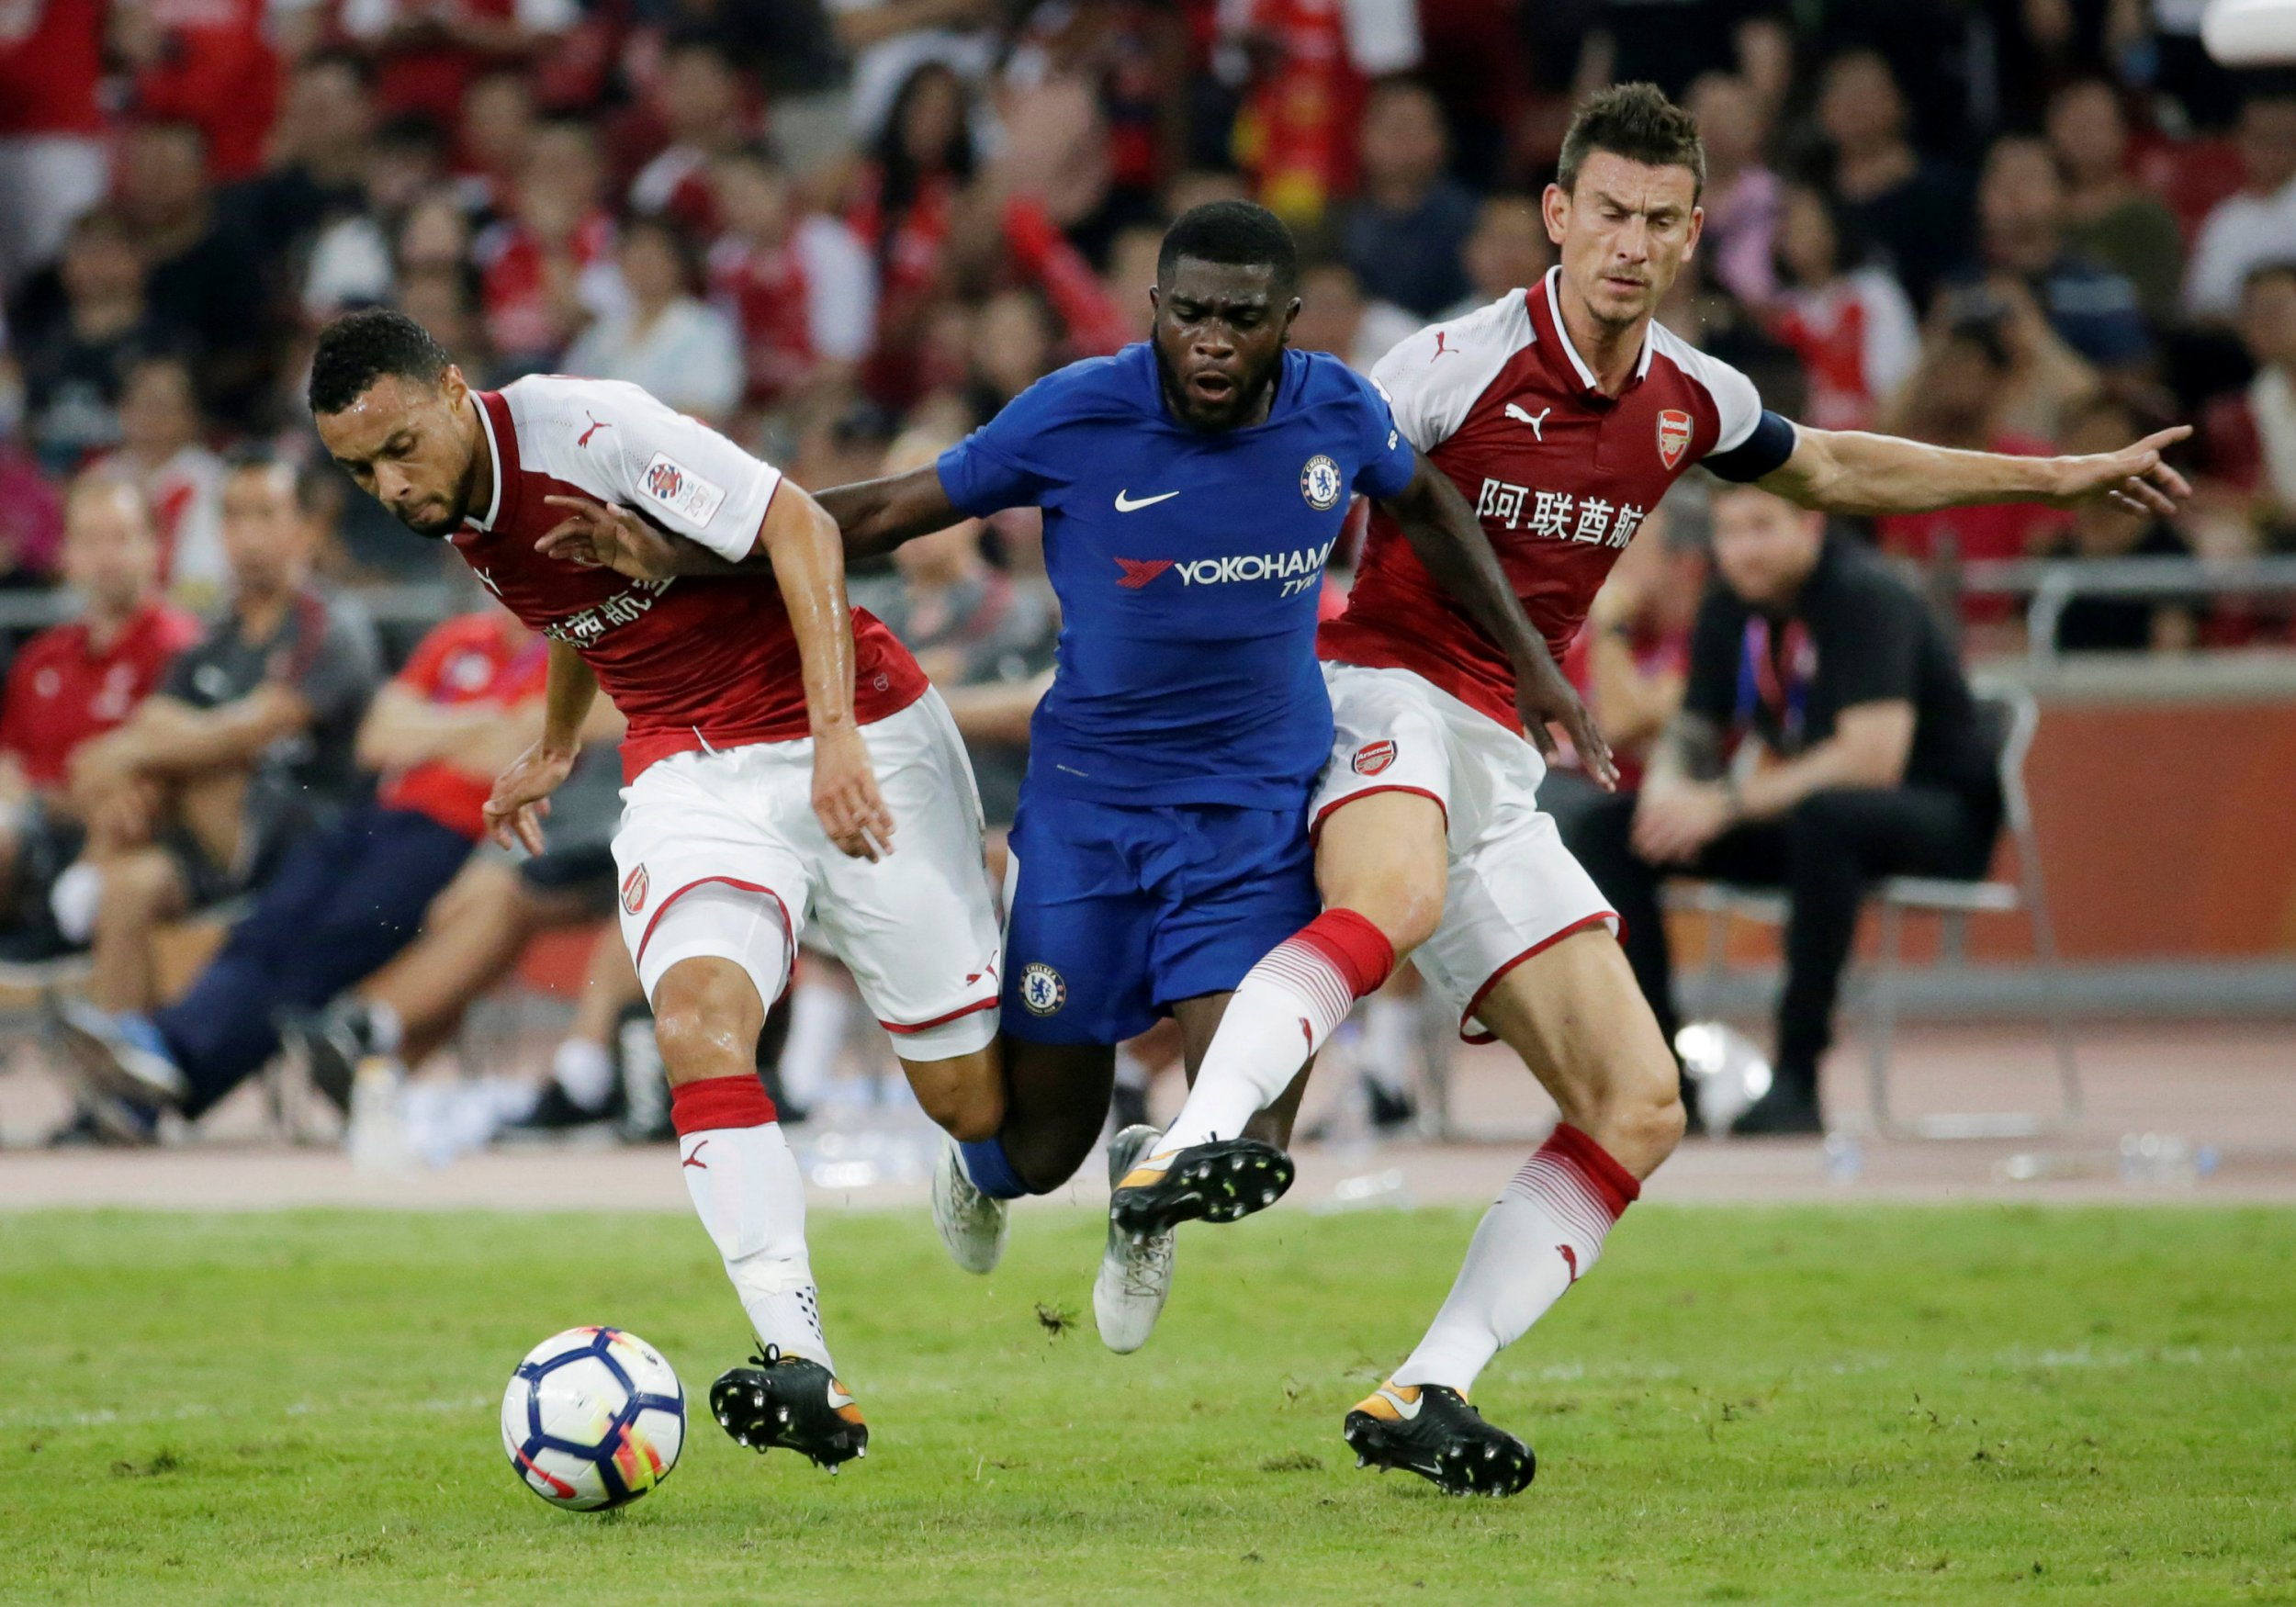 Chelsea starlet Jeremie Boga humiliates Sead Kolasinac and Francis Coquelin in sublime display against Arsenal